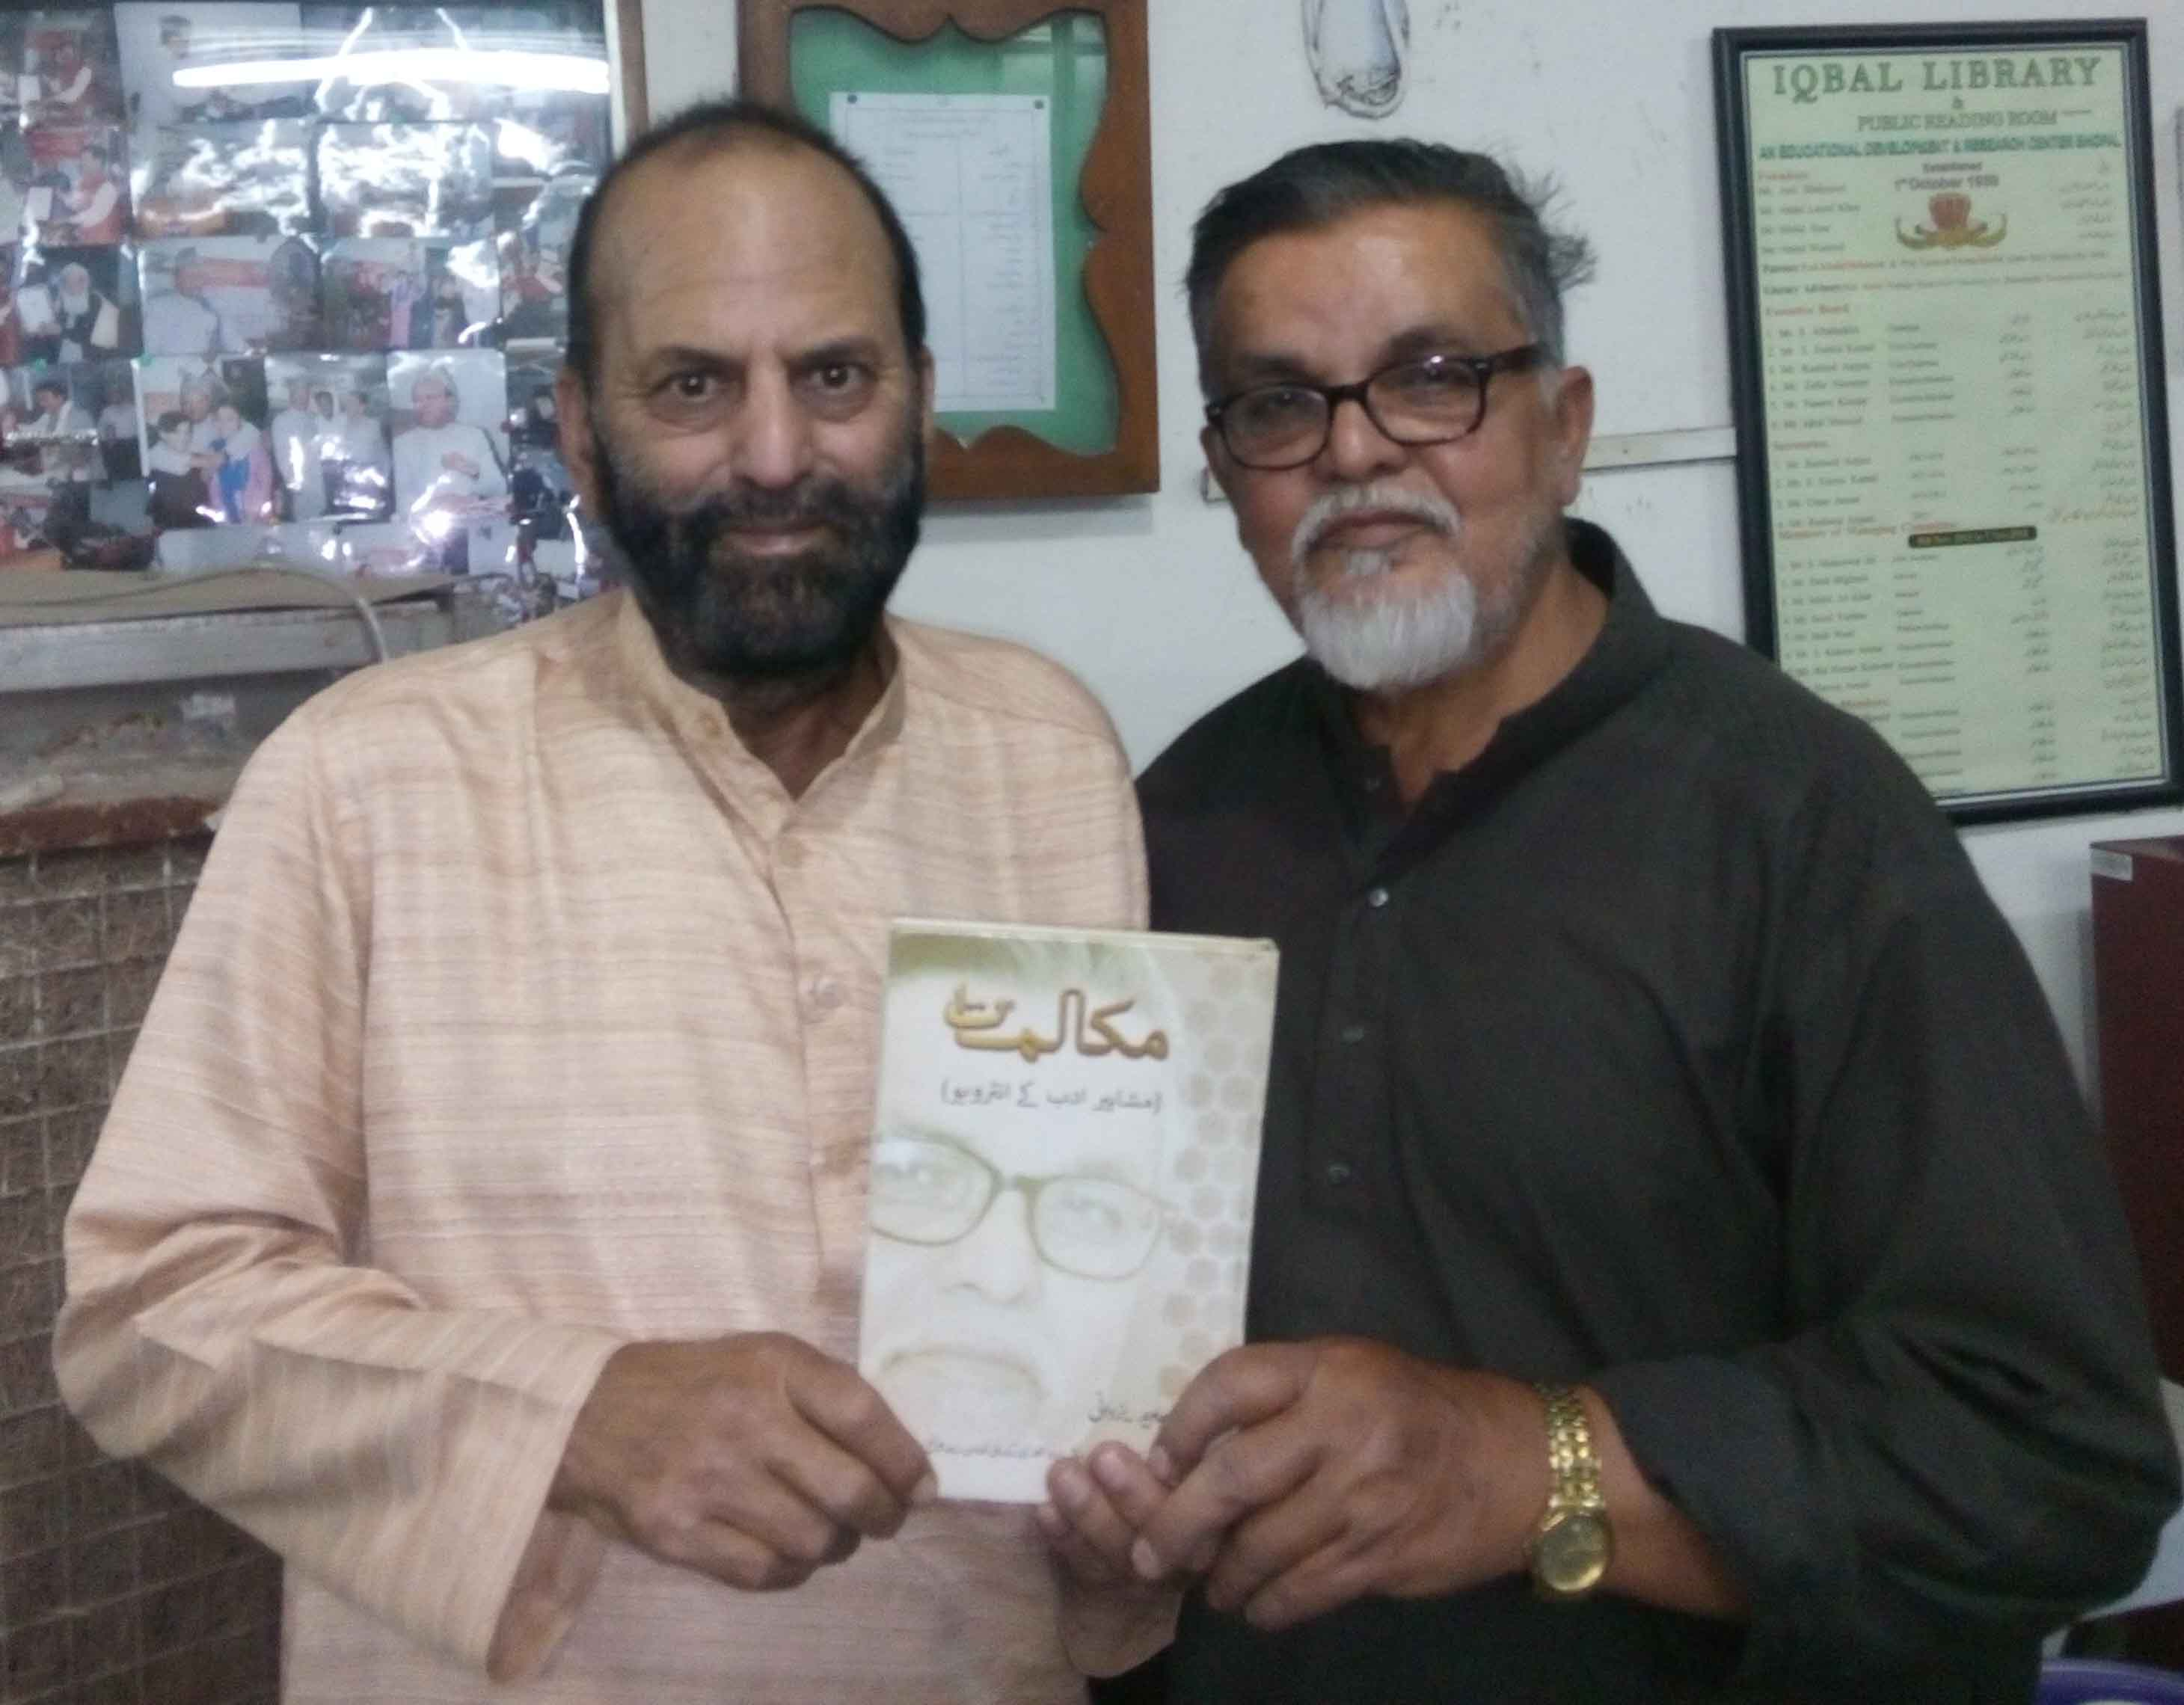 Javed Yadani (right) presenting his latest book to Muslim Saleem on March 31, 2017